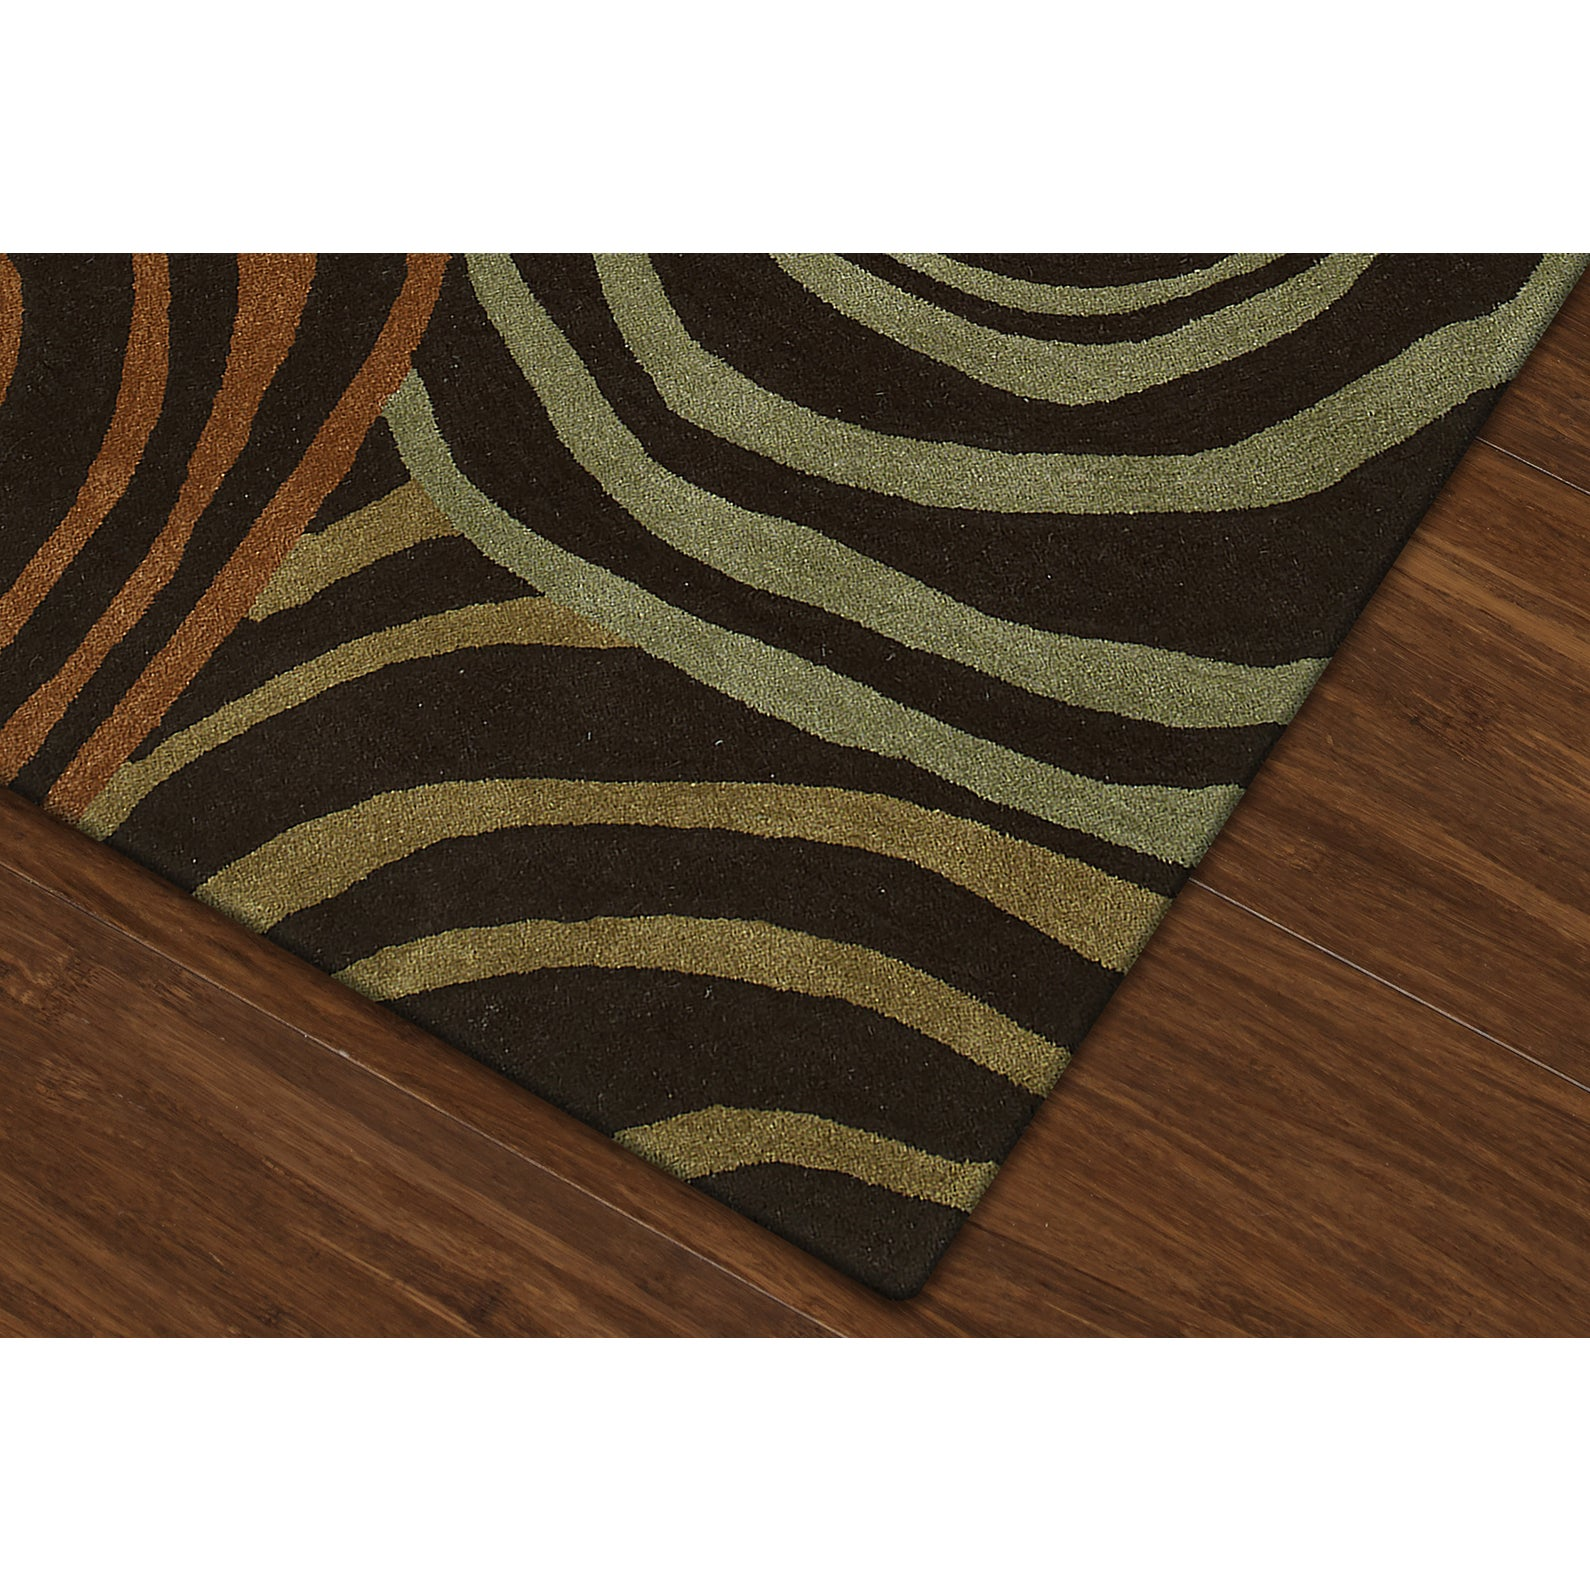 Addison Rugs Zenith Brown/ Orange Geometric Area Rug (5\' x 7\'6 ...